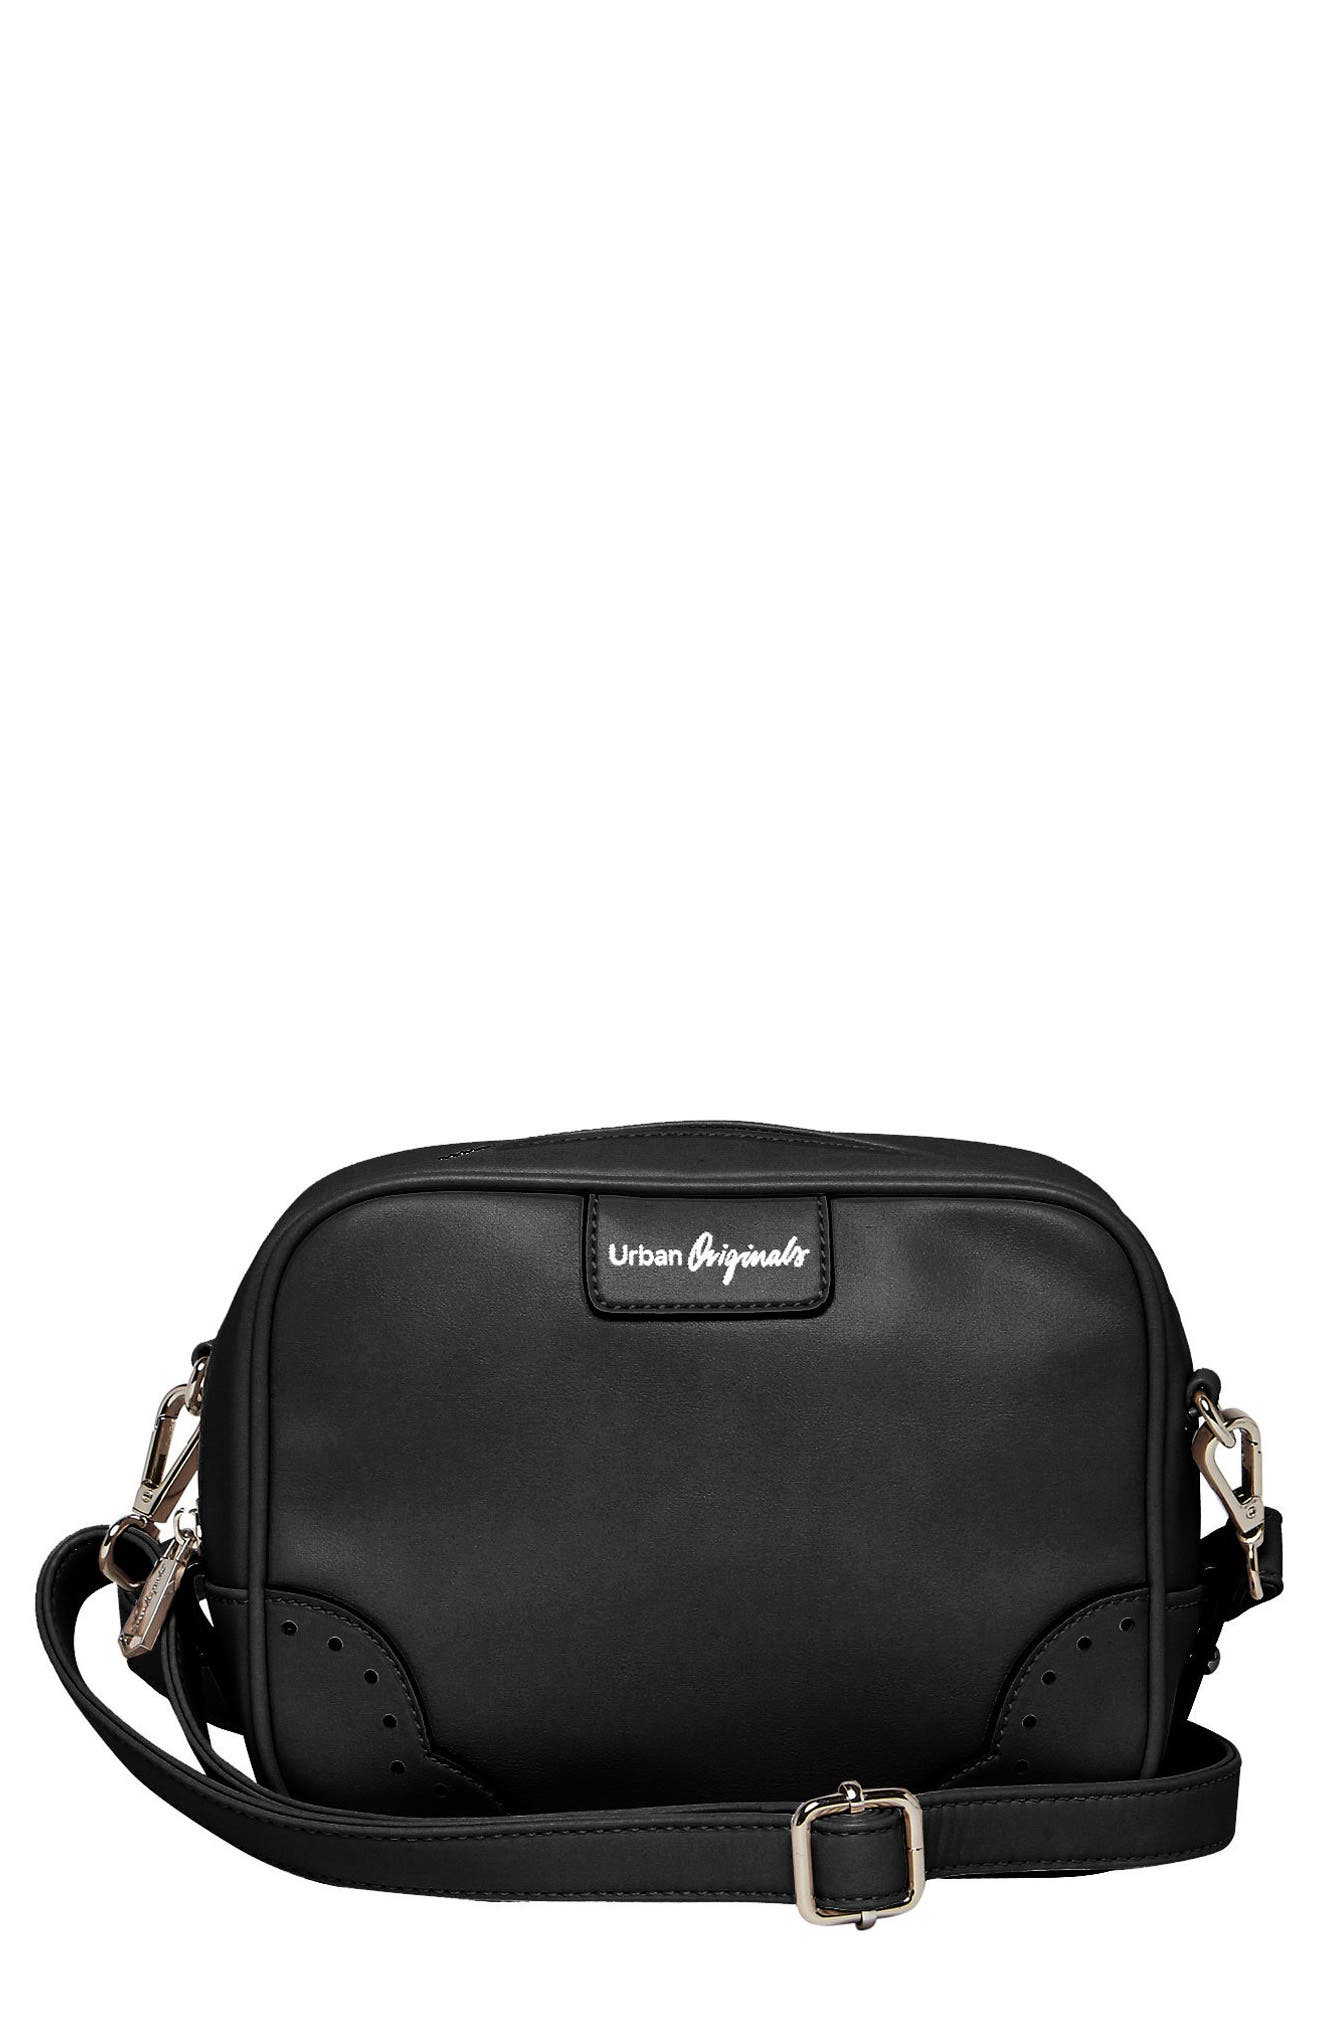 Alternate Image 1 Selected - Urban Originals Splendour Vegan Leather Crossbody Bag